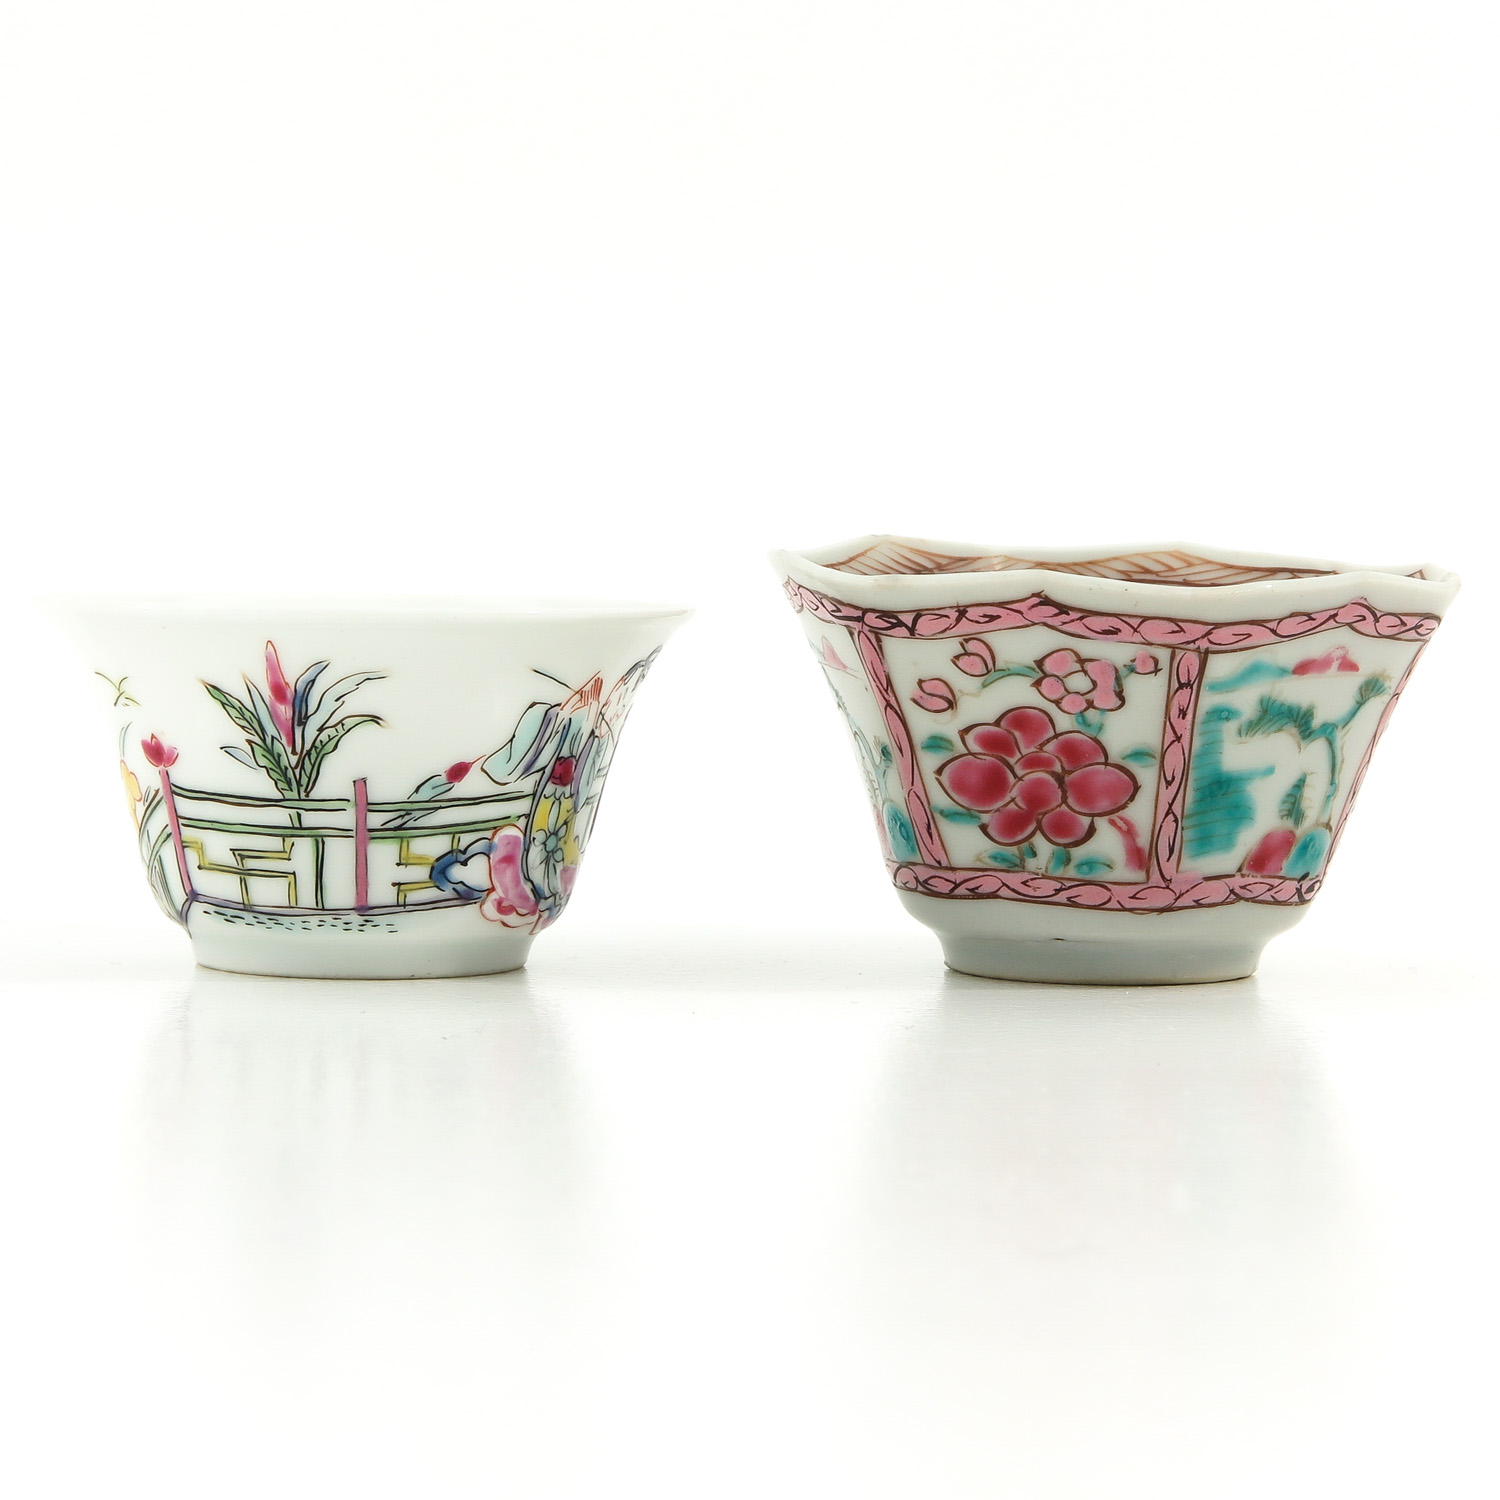 A Diverse Collection of Porcelain - Image 4 of 10